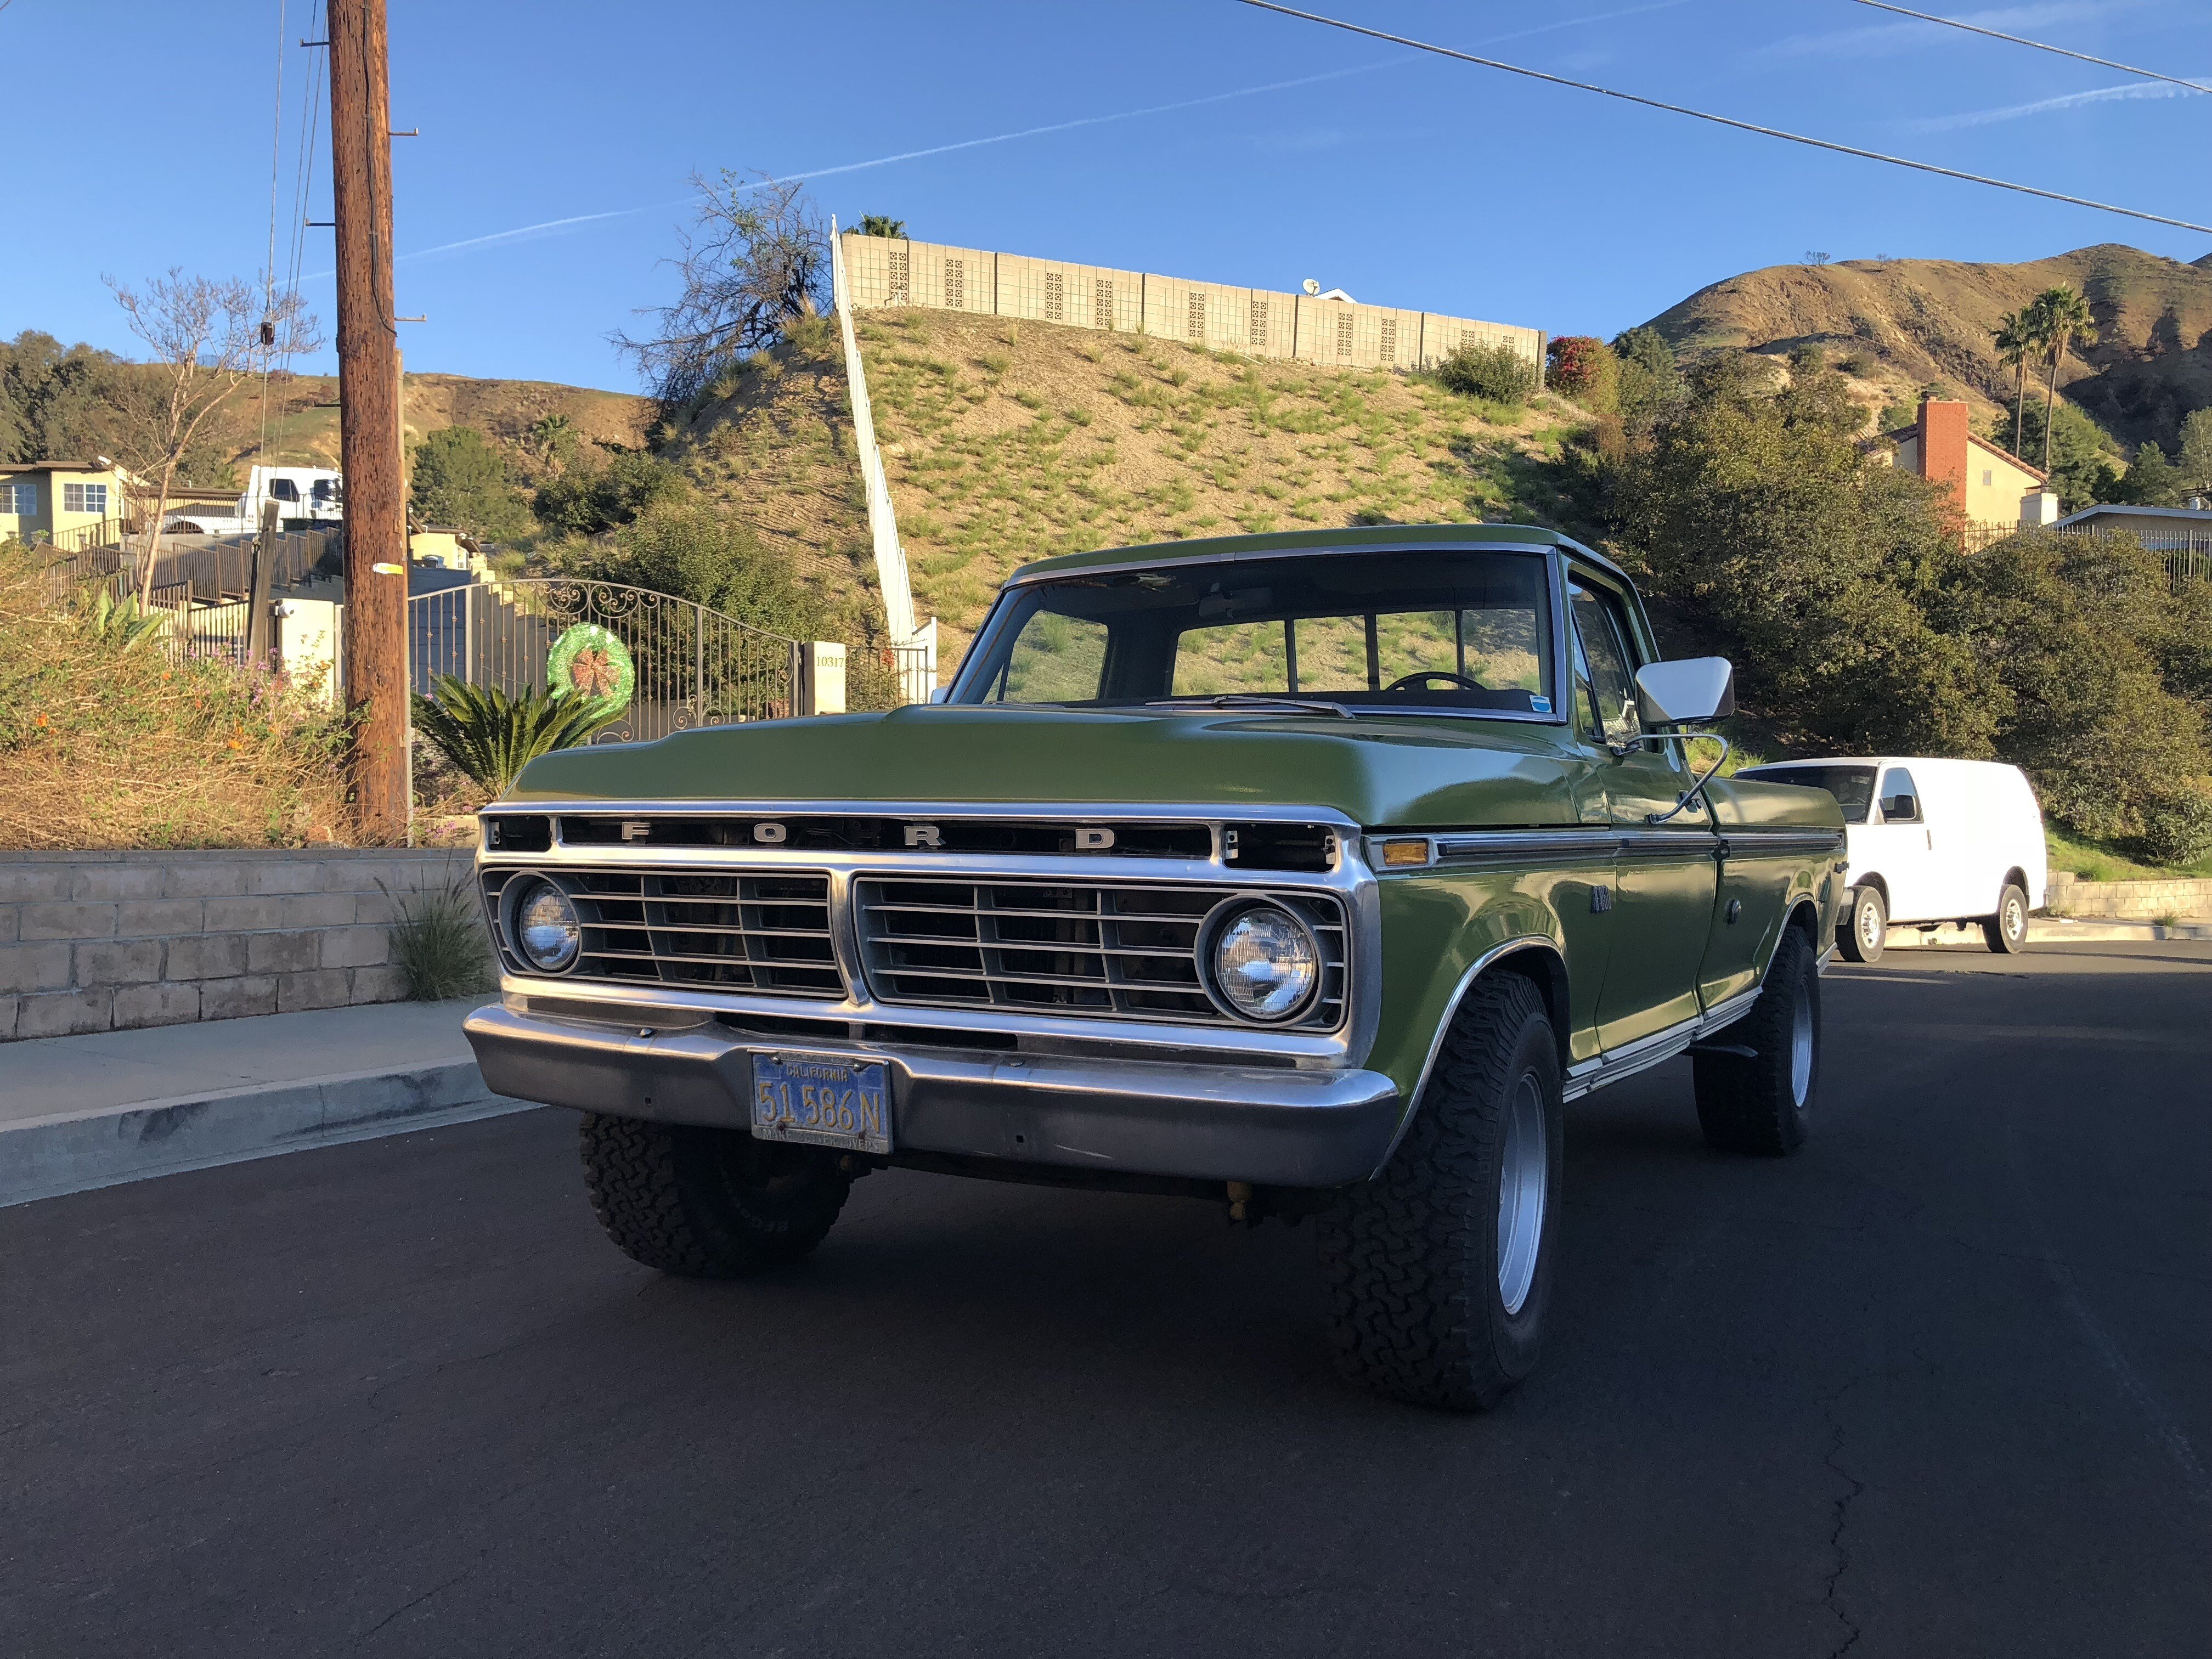 1973 Ford F 250 Owners Manual Good Owner Guide Website 1969 Highboy 4x4 F250 Classics For Sale On Autotrader Rh Com 1977